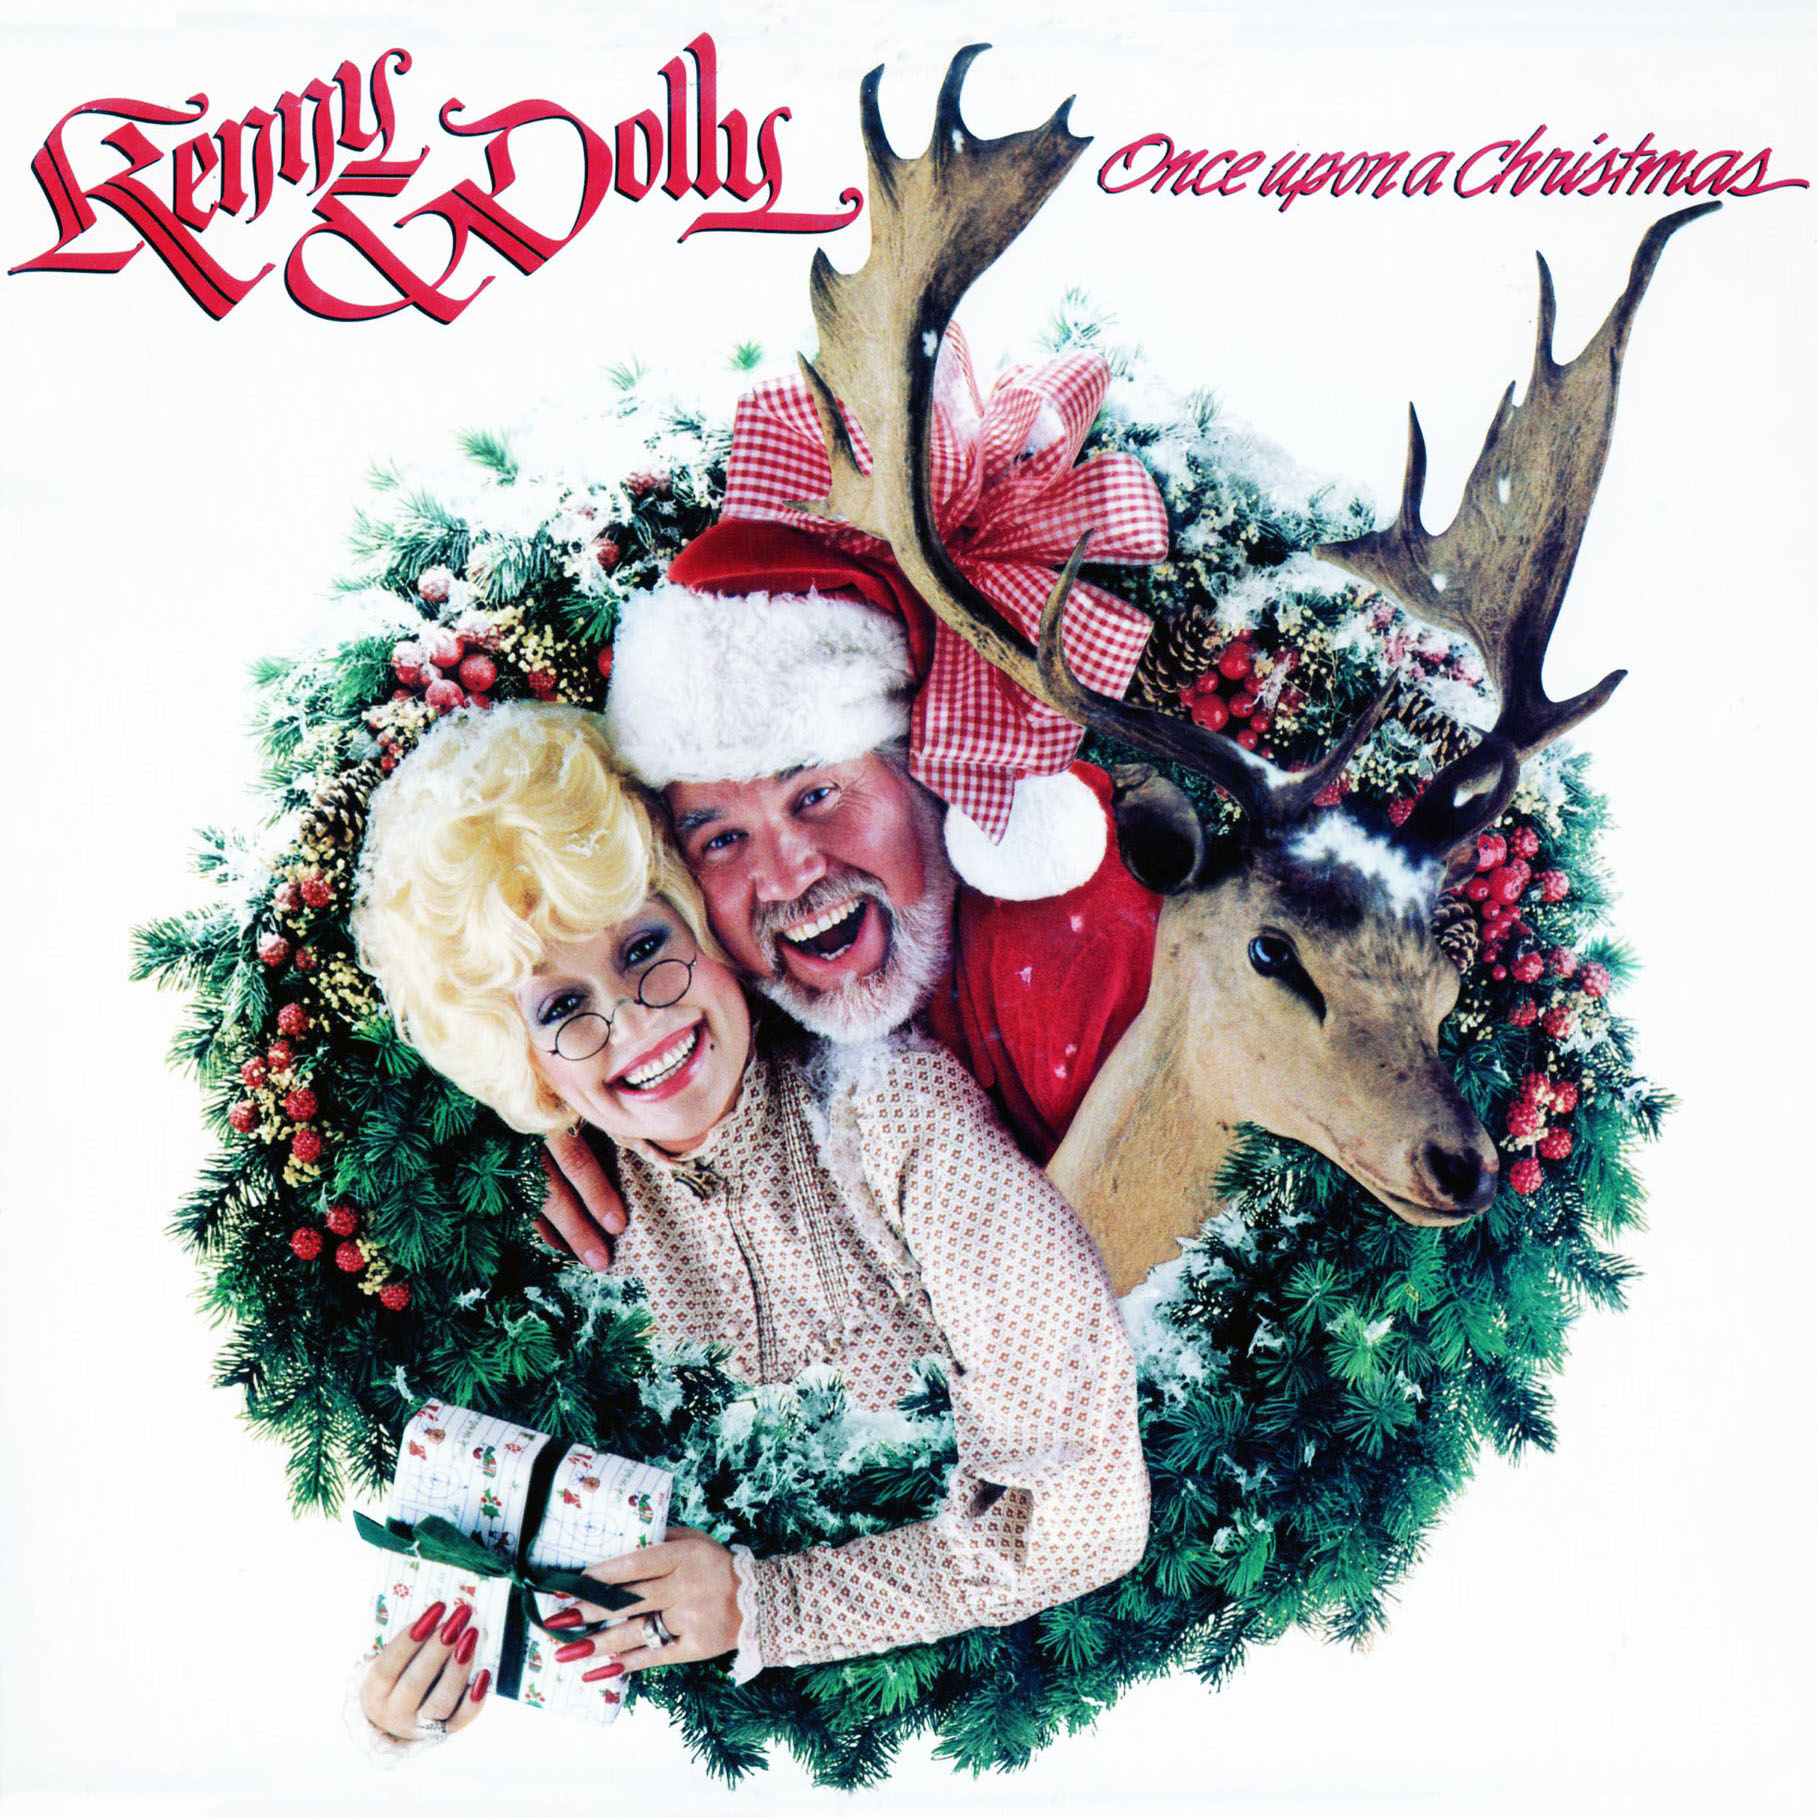 Dolly Parton and Kenny Rogers Christmas